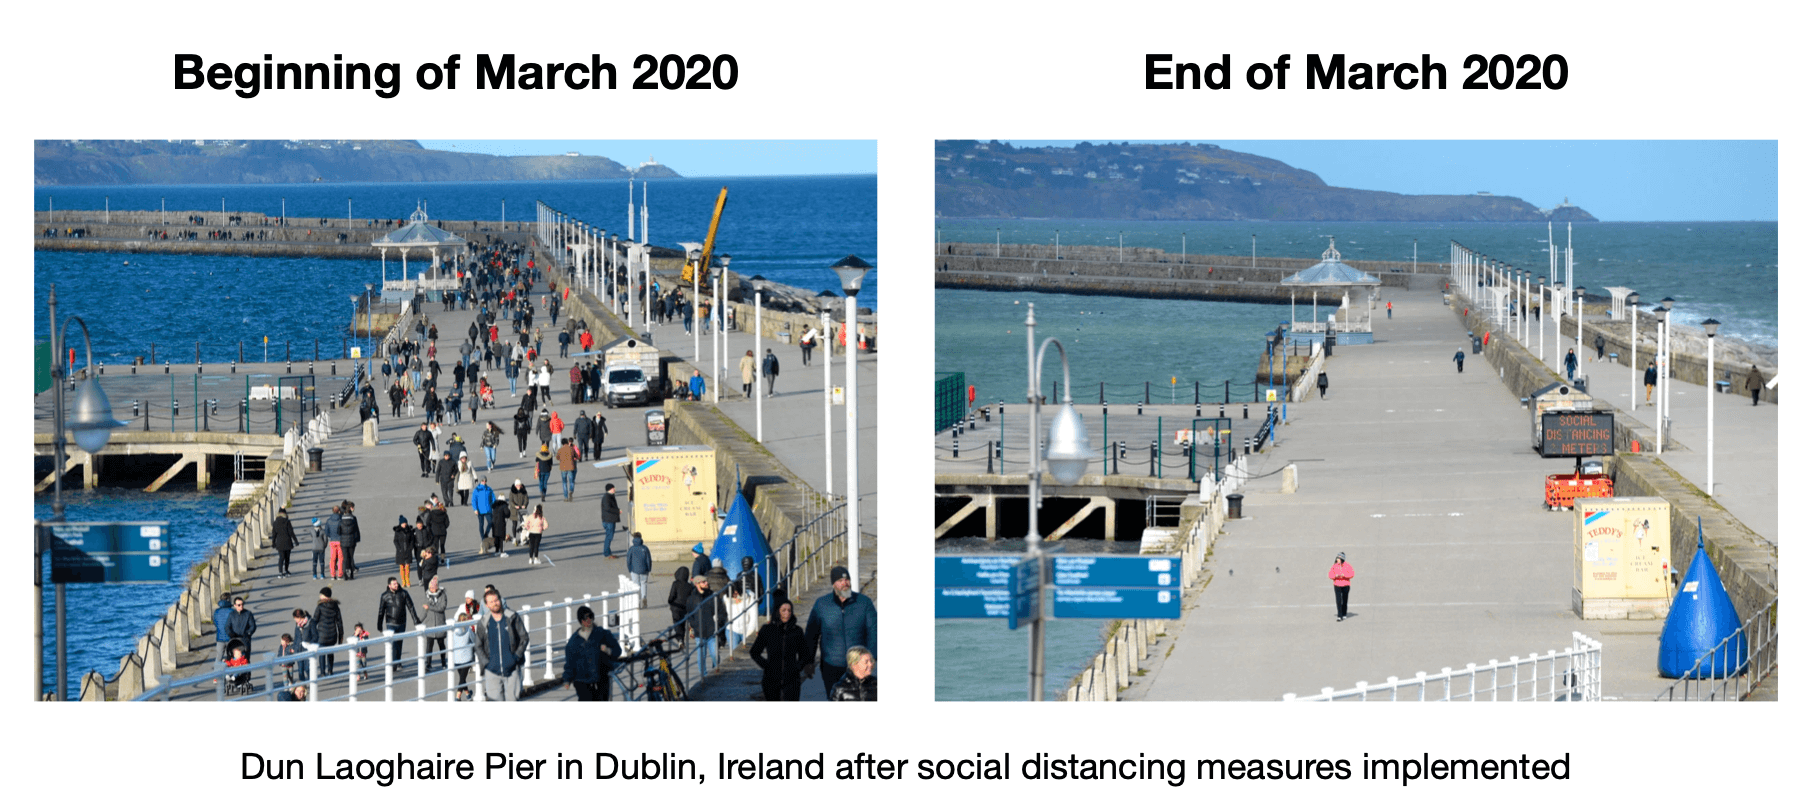 Dublin Pier before and after social distancing measures image